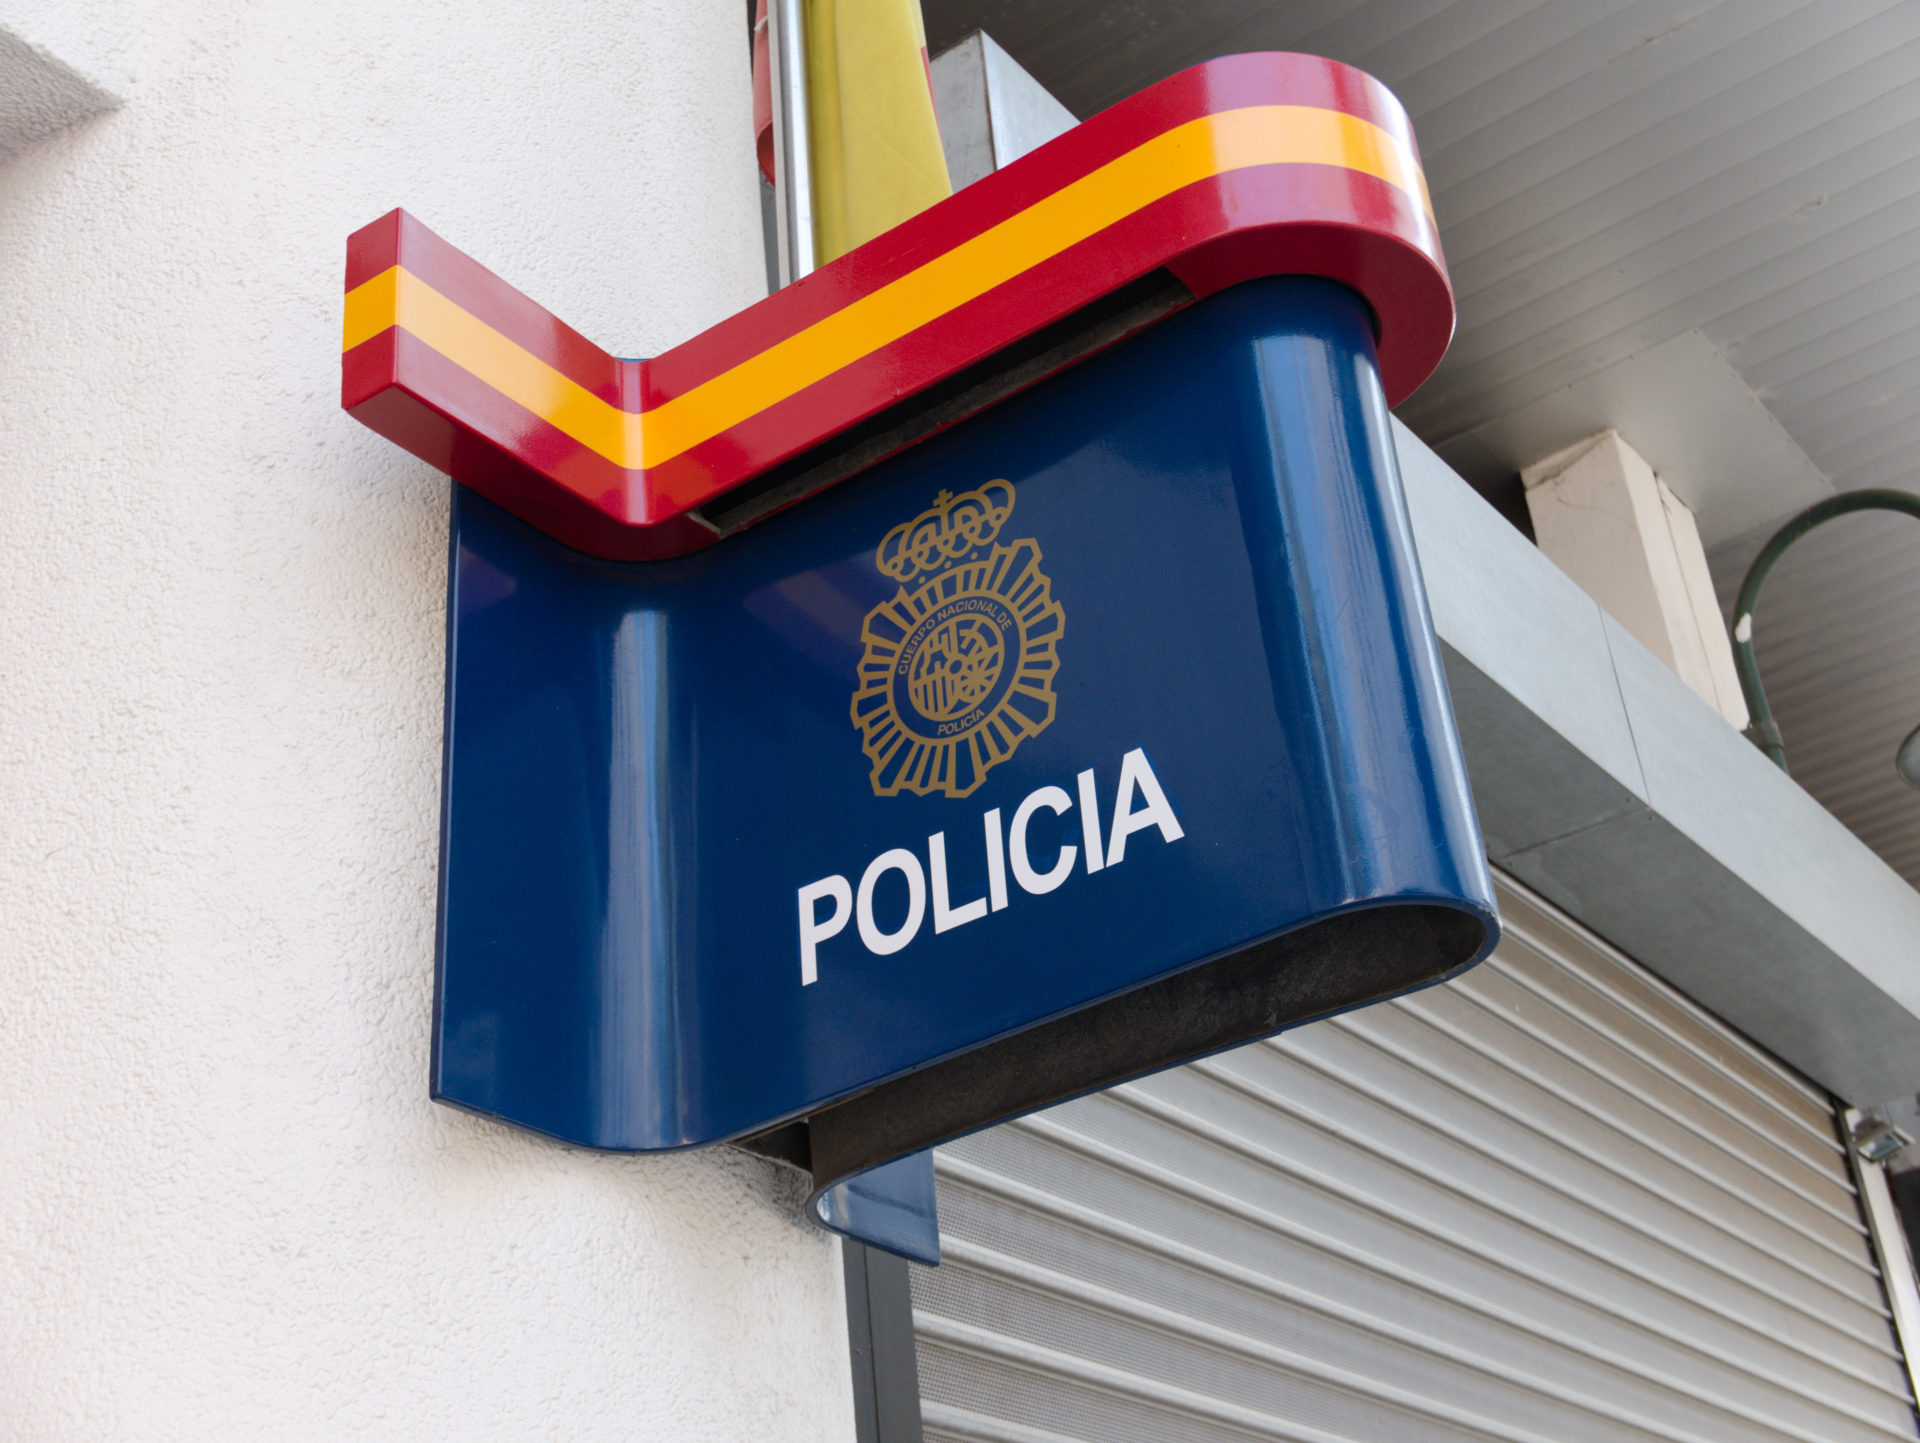 A police station in Spain